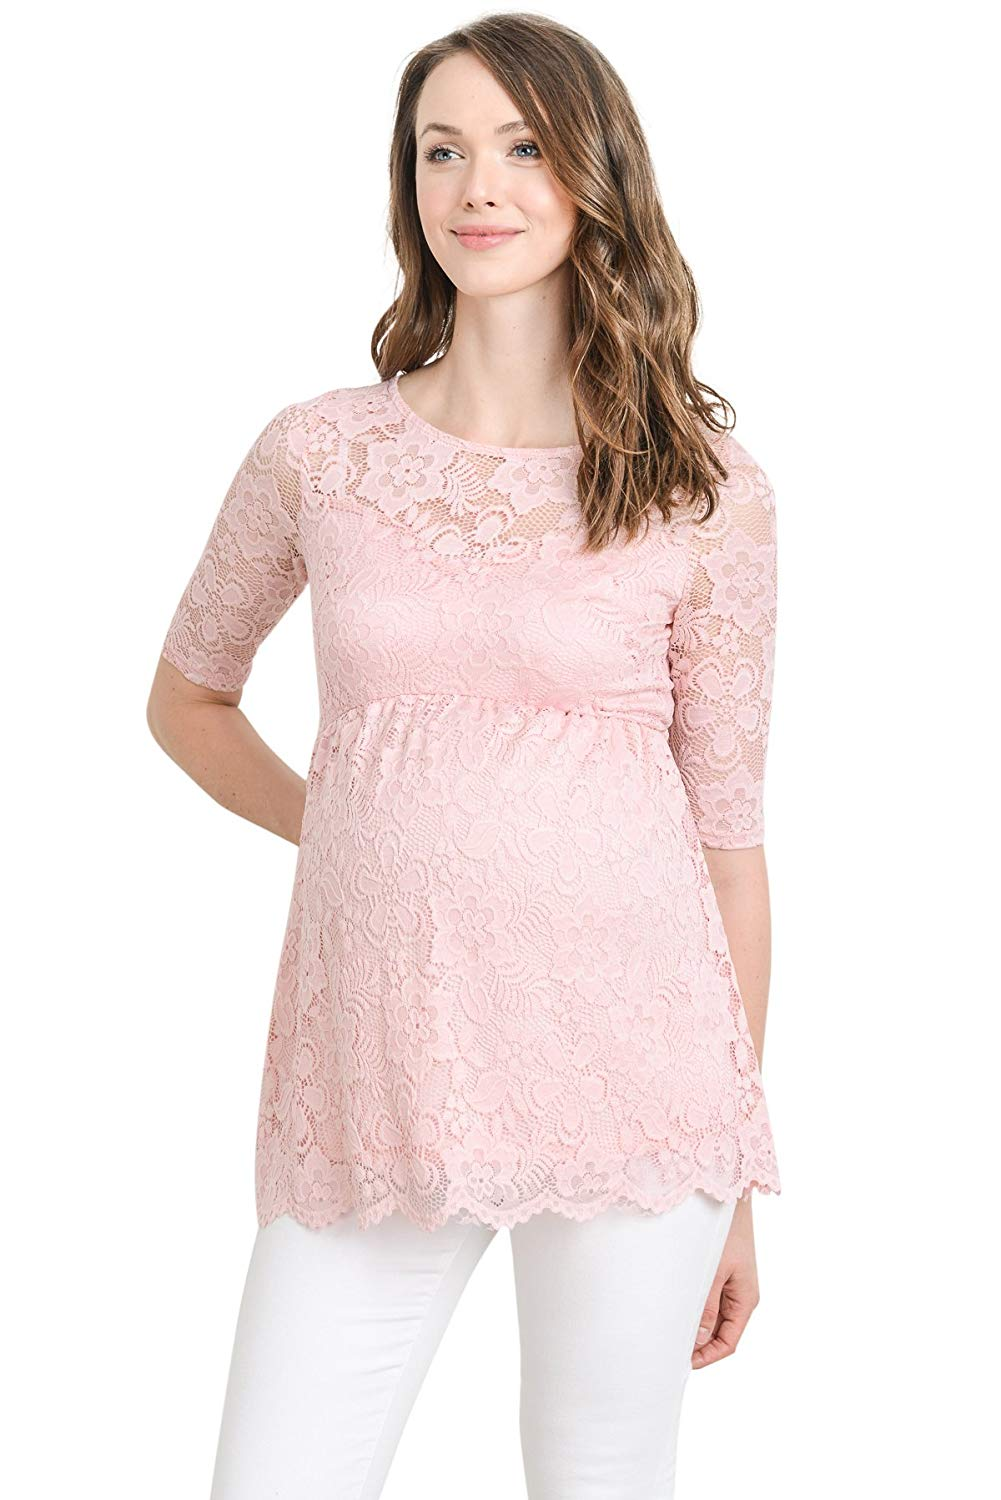 Lace Maternity Tops